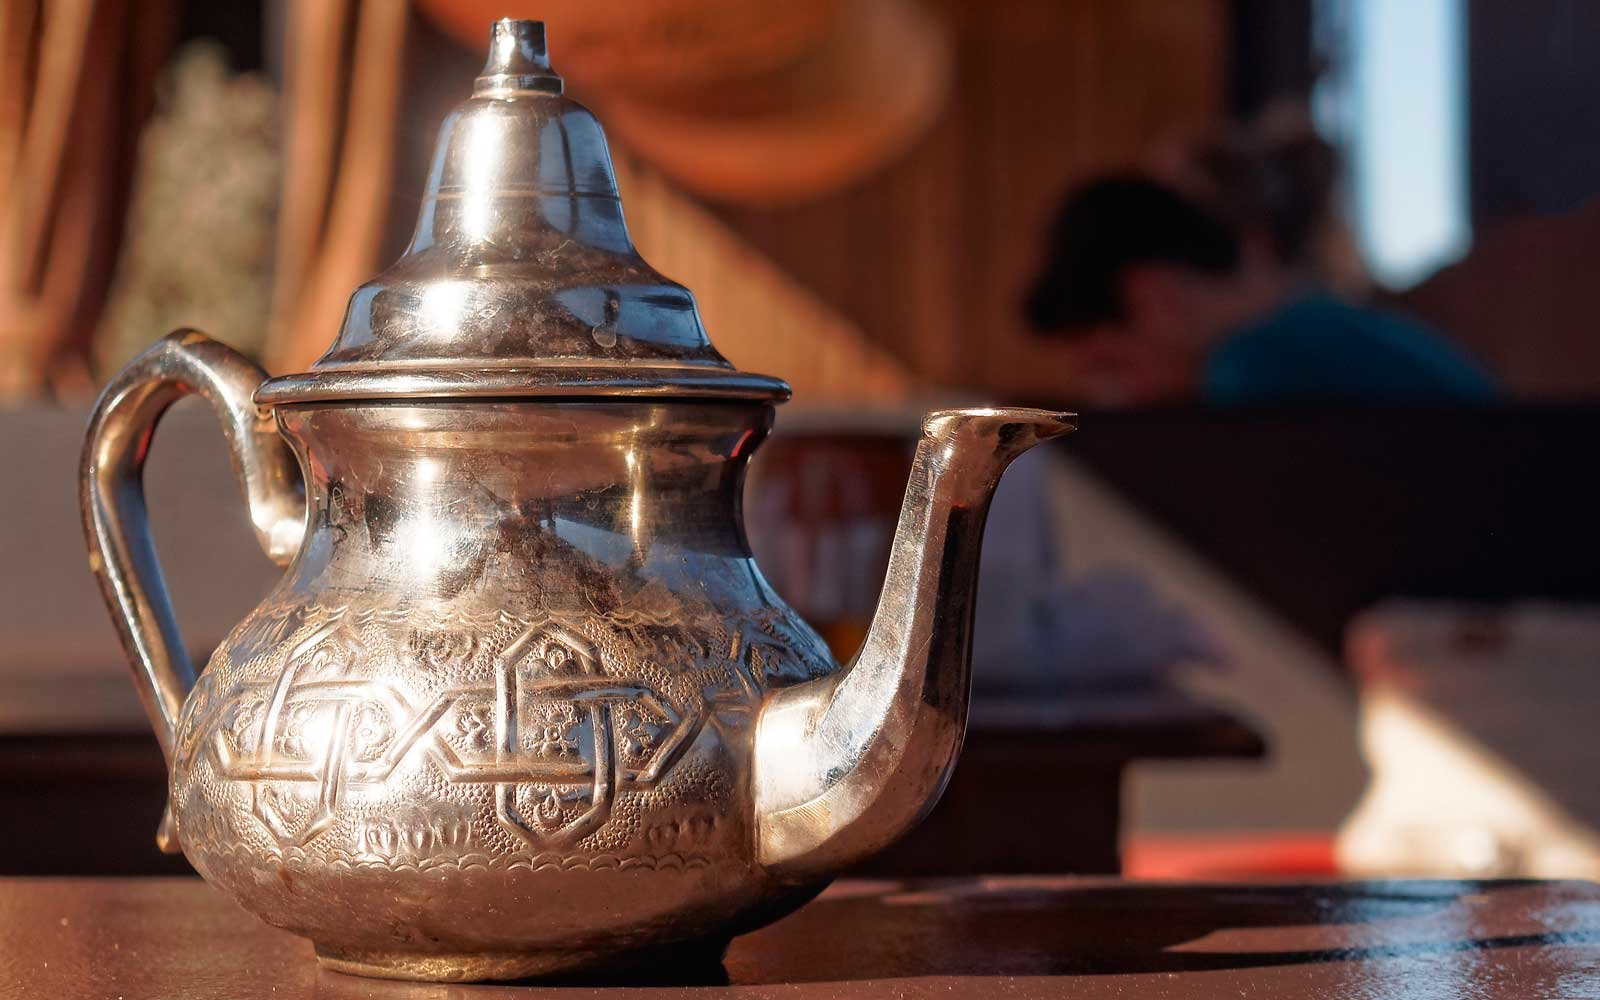 Detail of a tea pot in Marrakech, Morocco